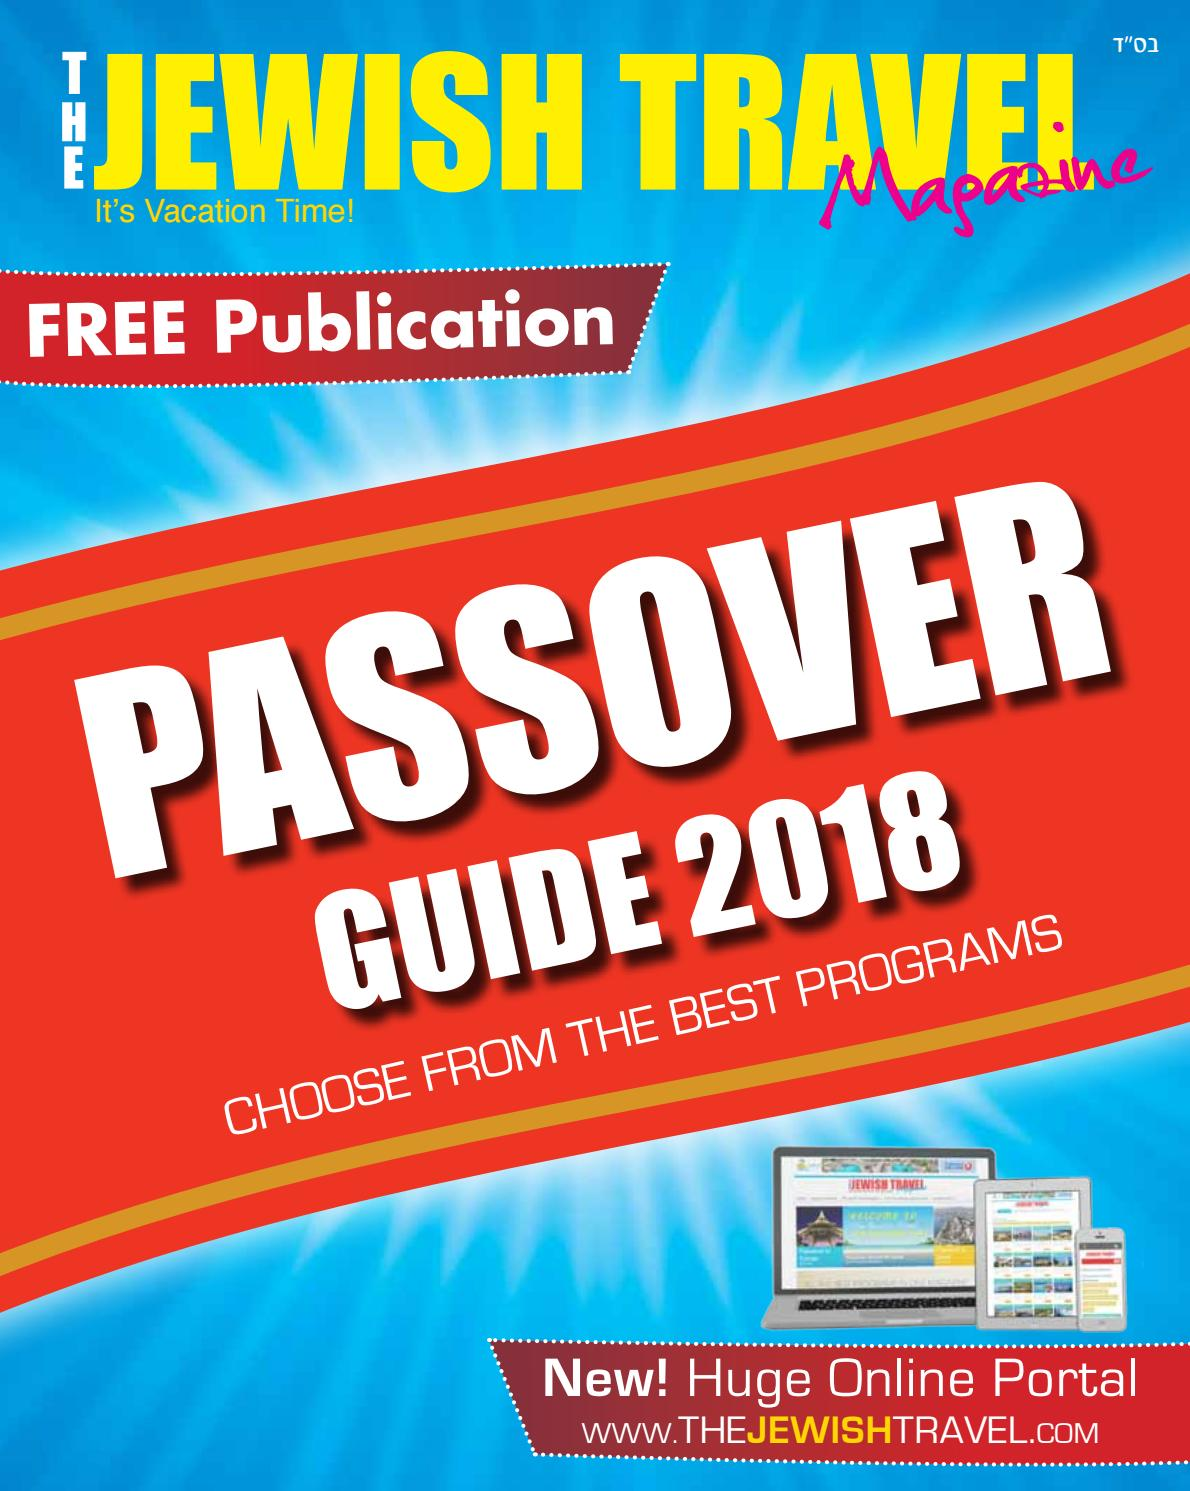 The Jewish Travel - Passover Guide 2018 by Travel Networking - issuu